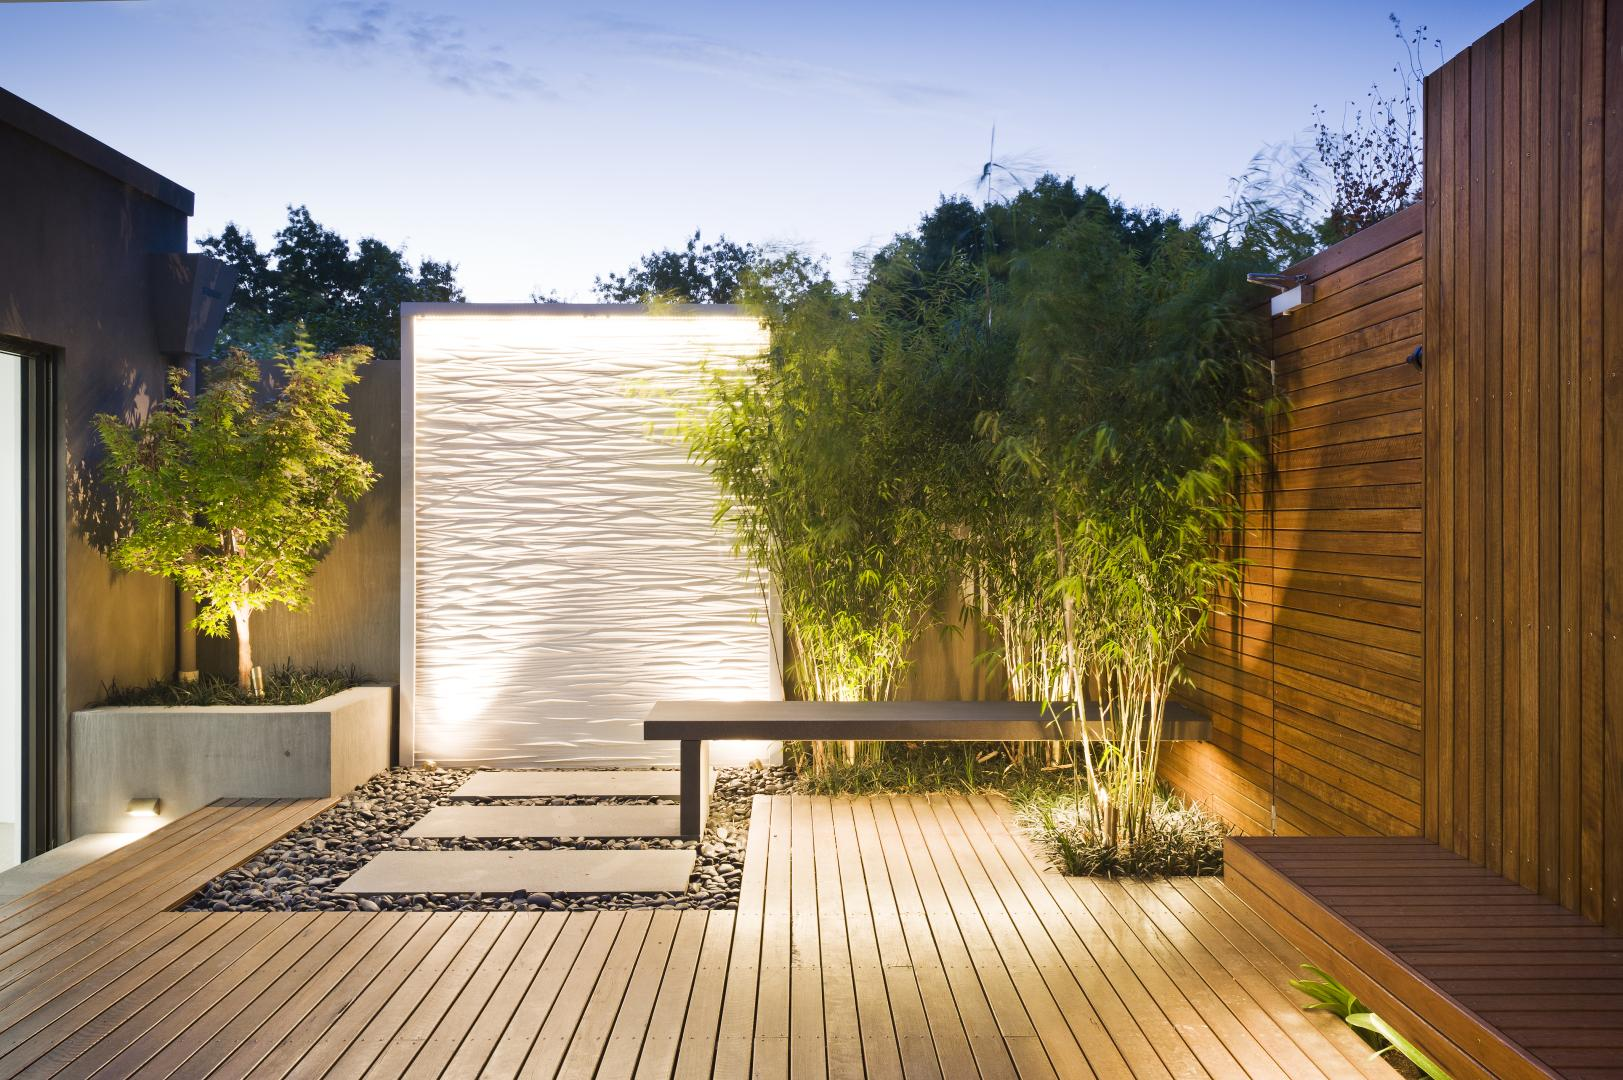 Mix of traditional and modern architecture which gives for Contemporary landscape architecture